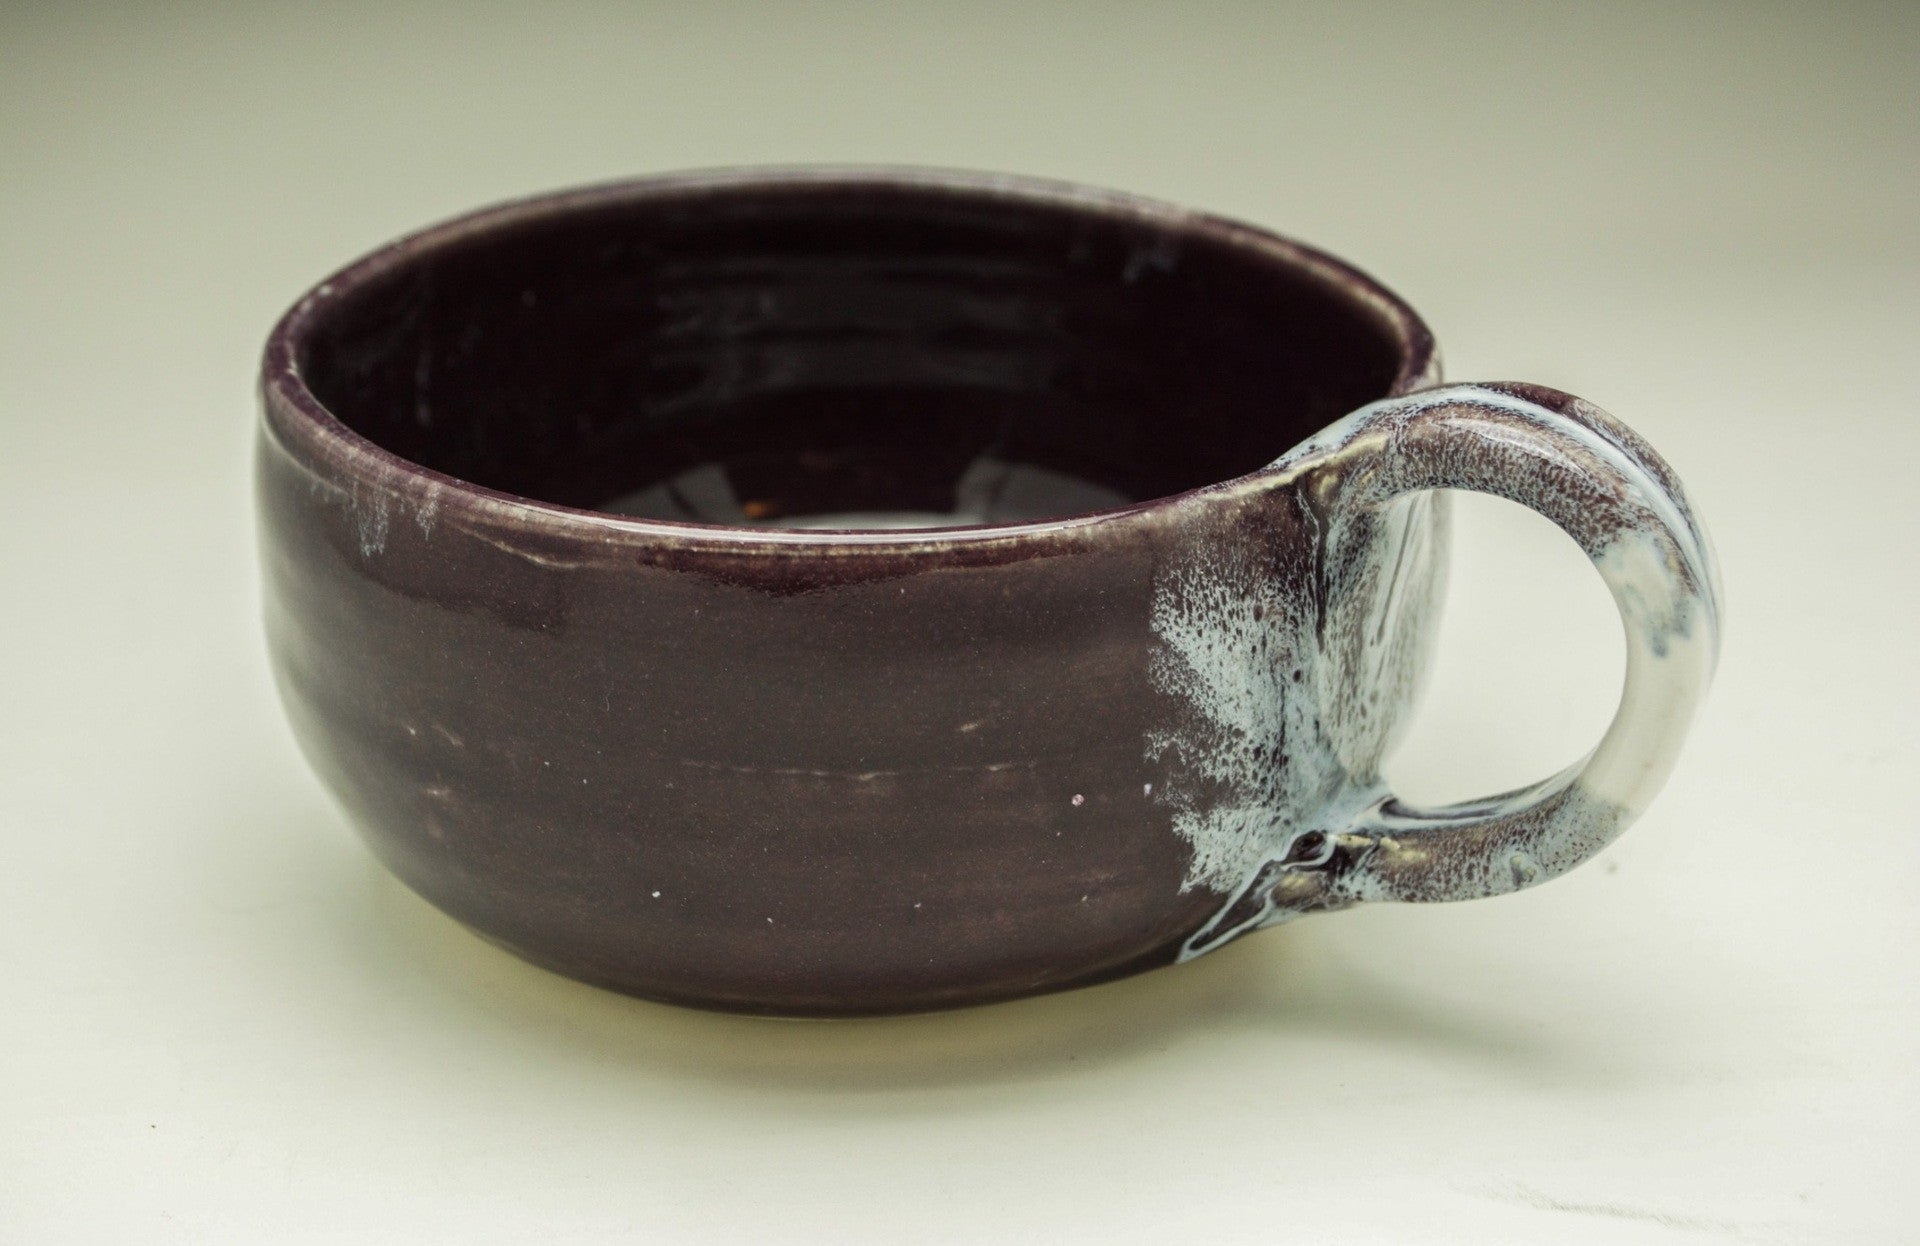 Majestic Purple Hand Thrown Ceramic Soup Bowl - Celebrate Local, Shop The Best of Ohio